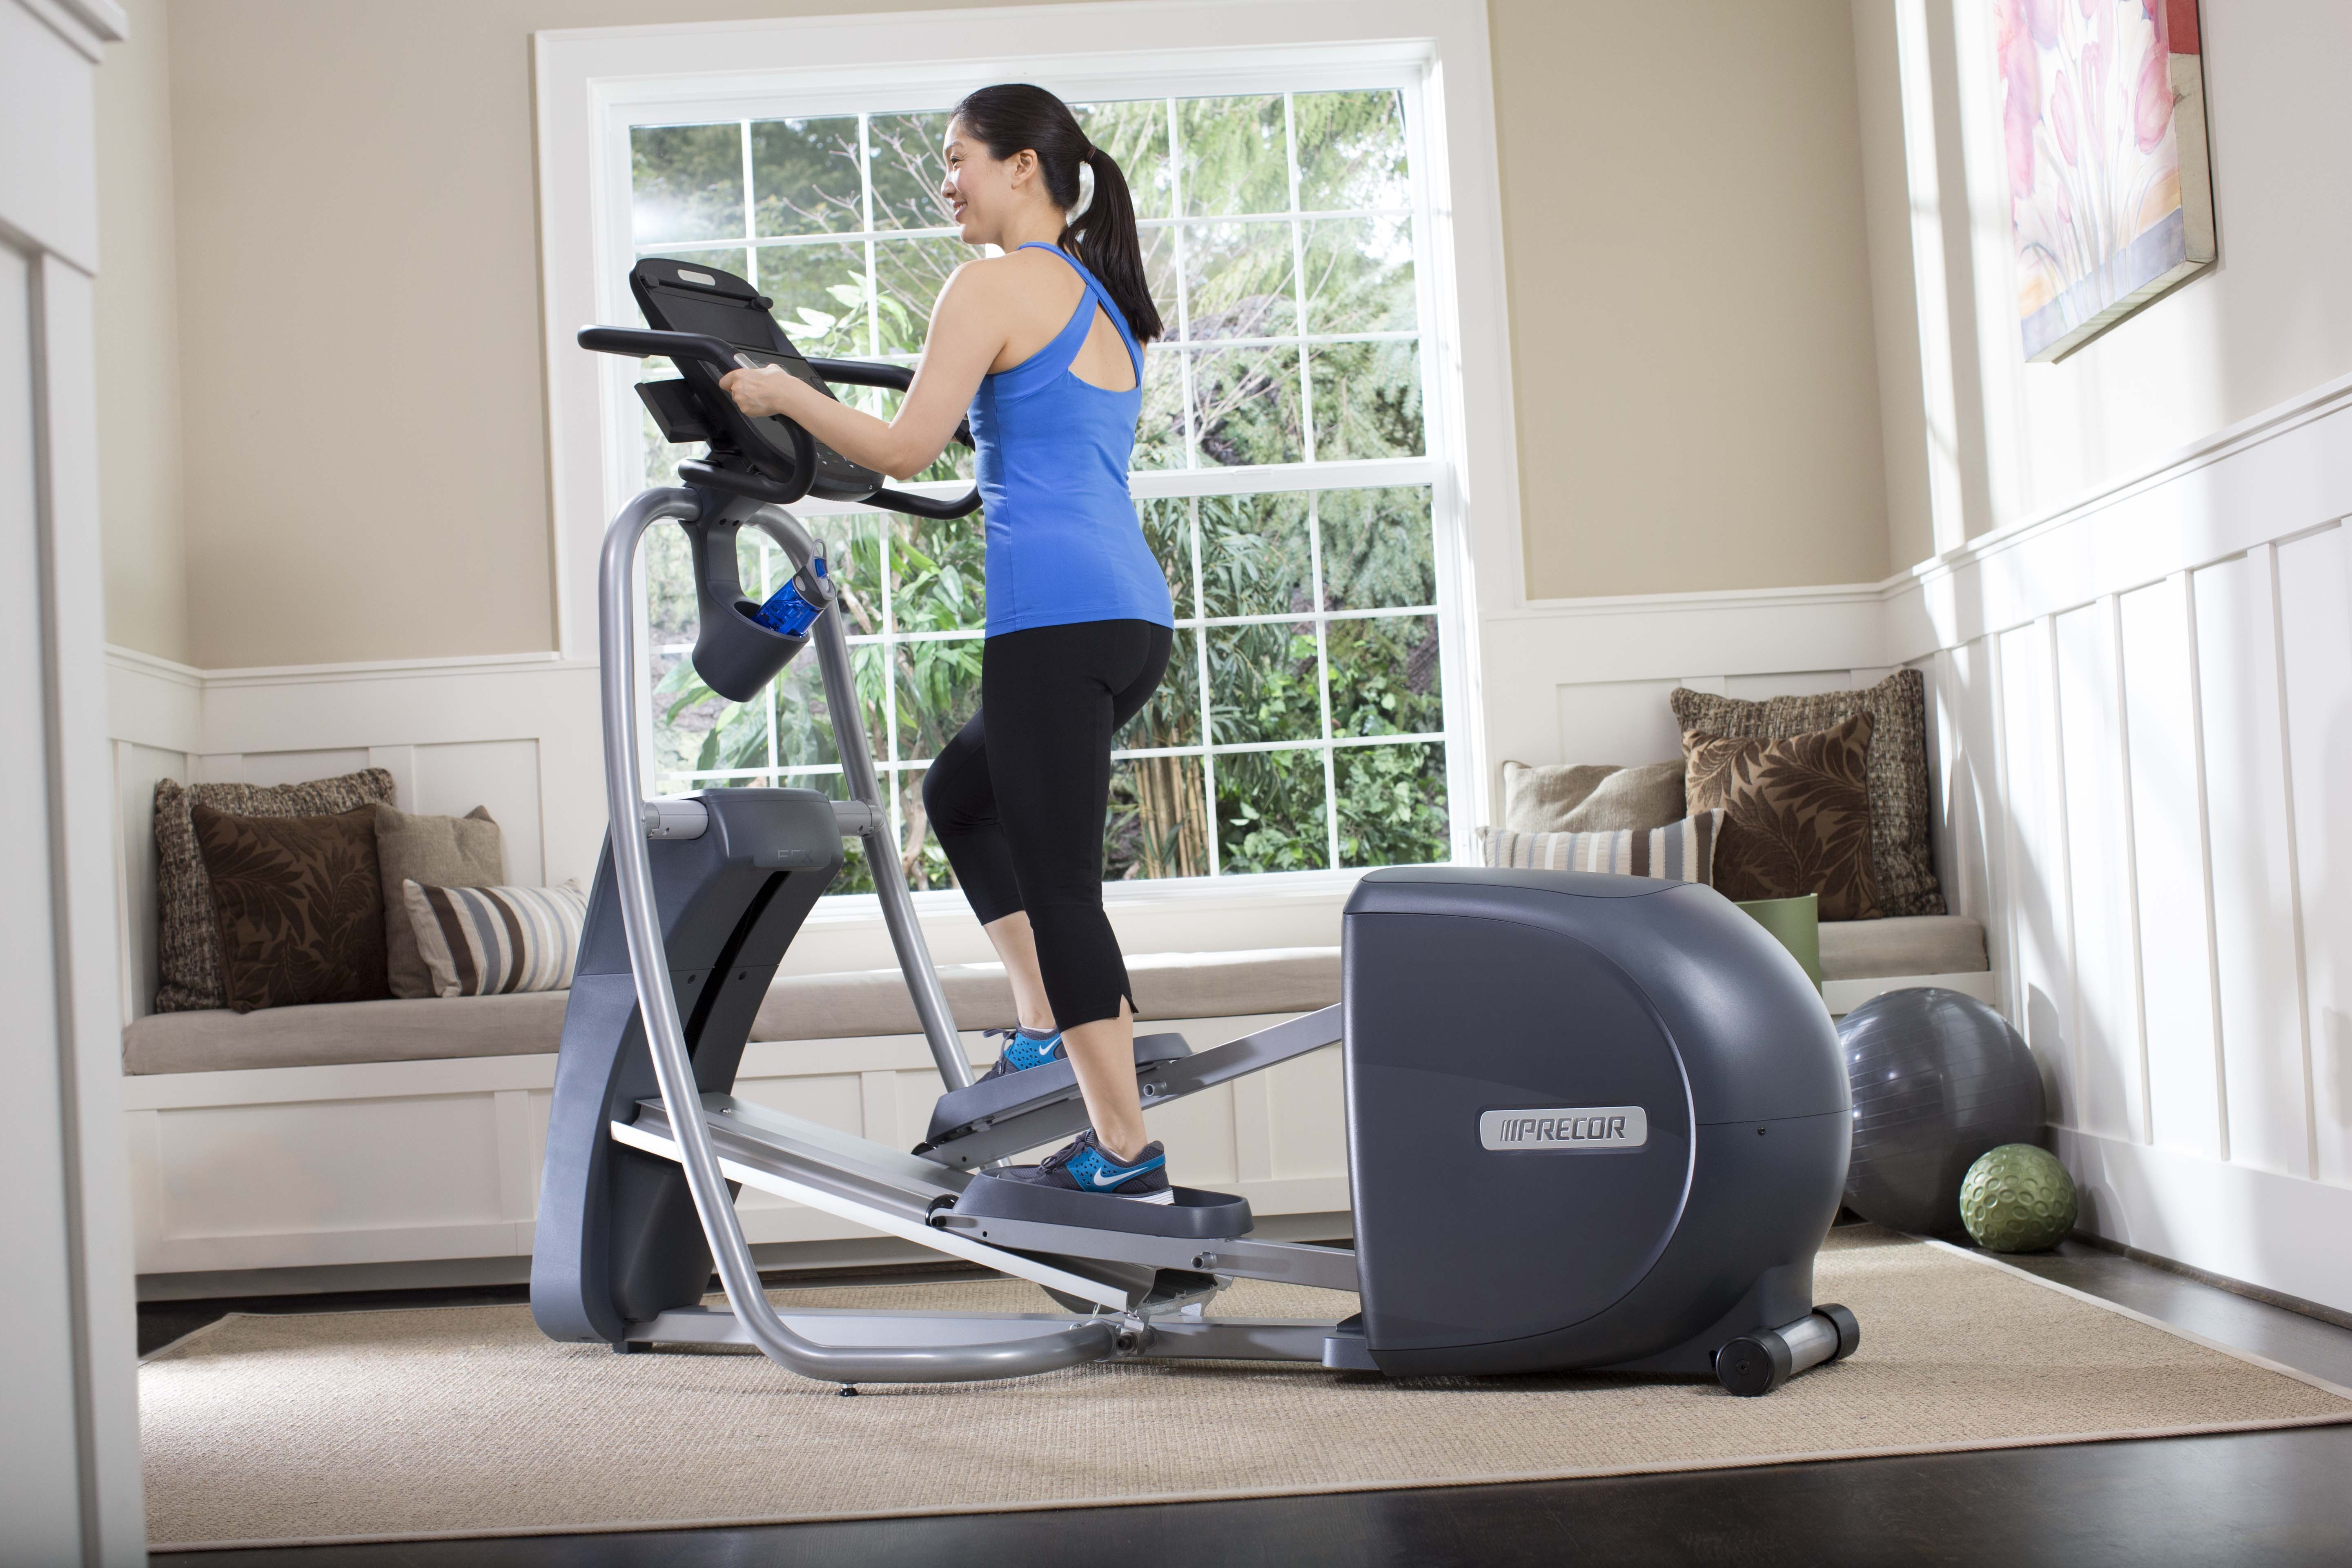 free product sports bike regenerating today mat marcy mats shipping elliptical overstock toys